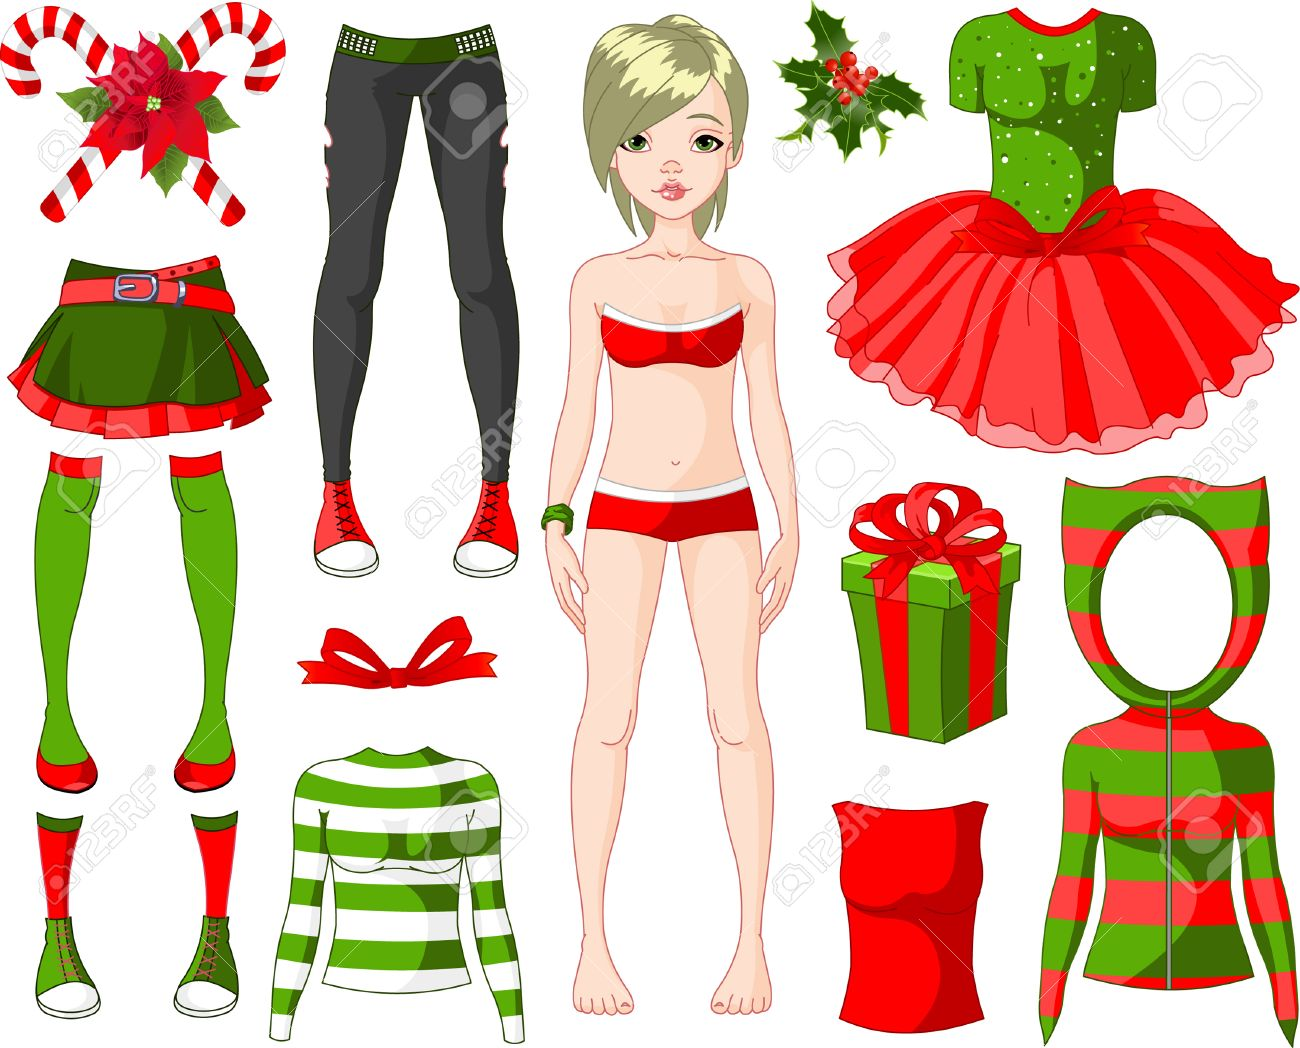 Paper Doll with different Christmas dresses Stock Vector - 8426144